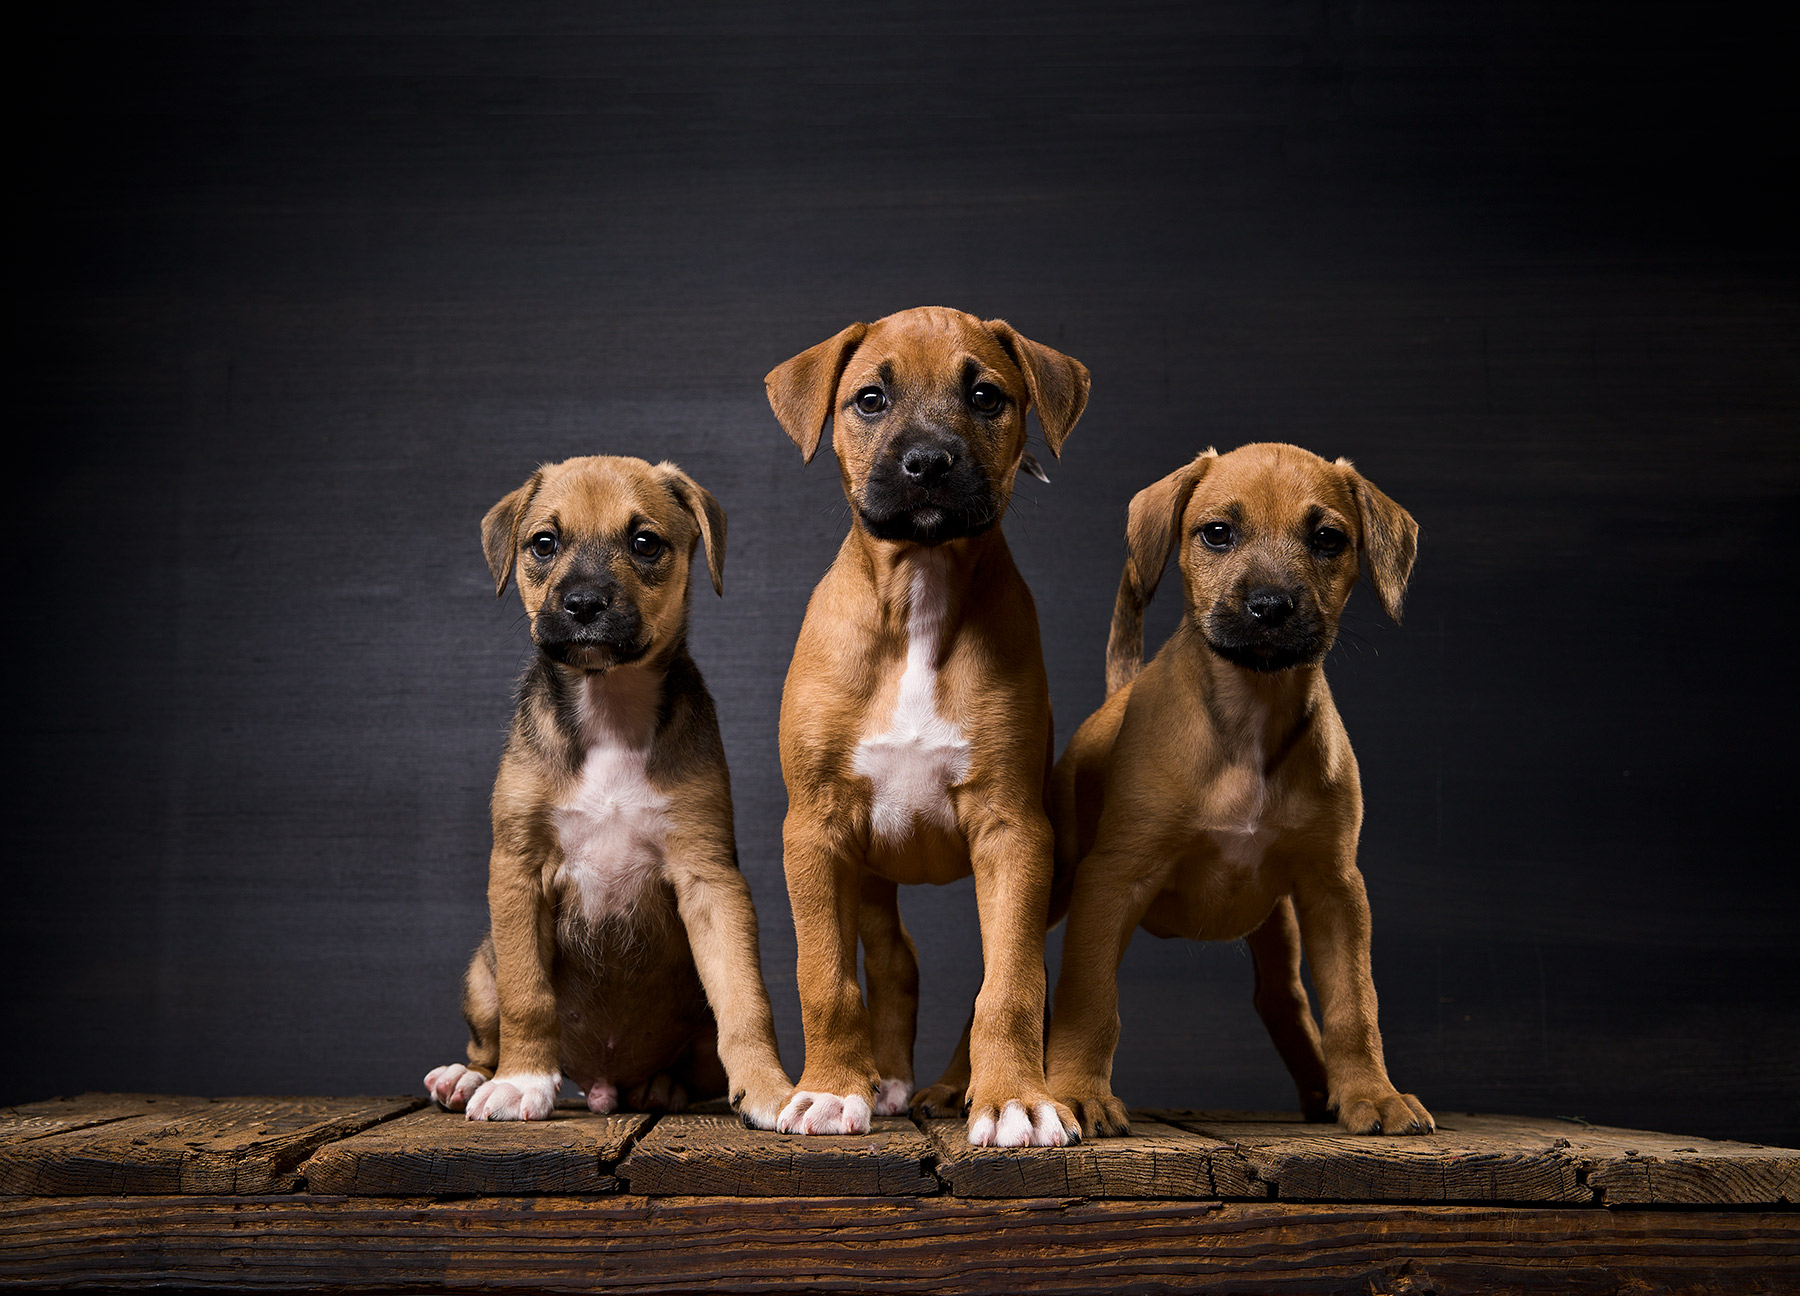 A-studio-portrait-of-three-Boxer-puppies-against-a-black-background